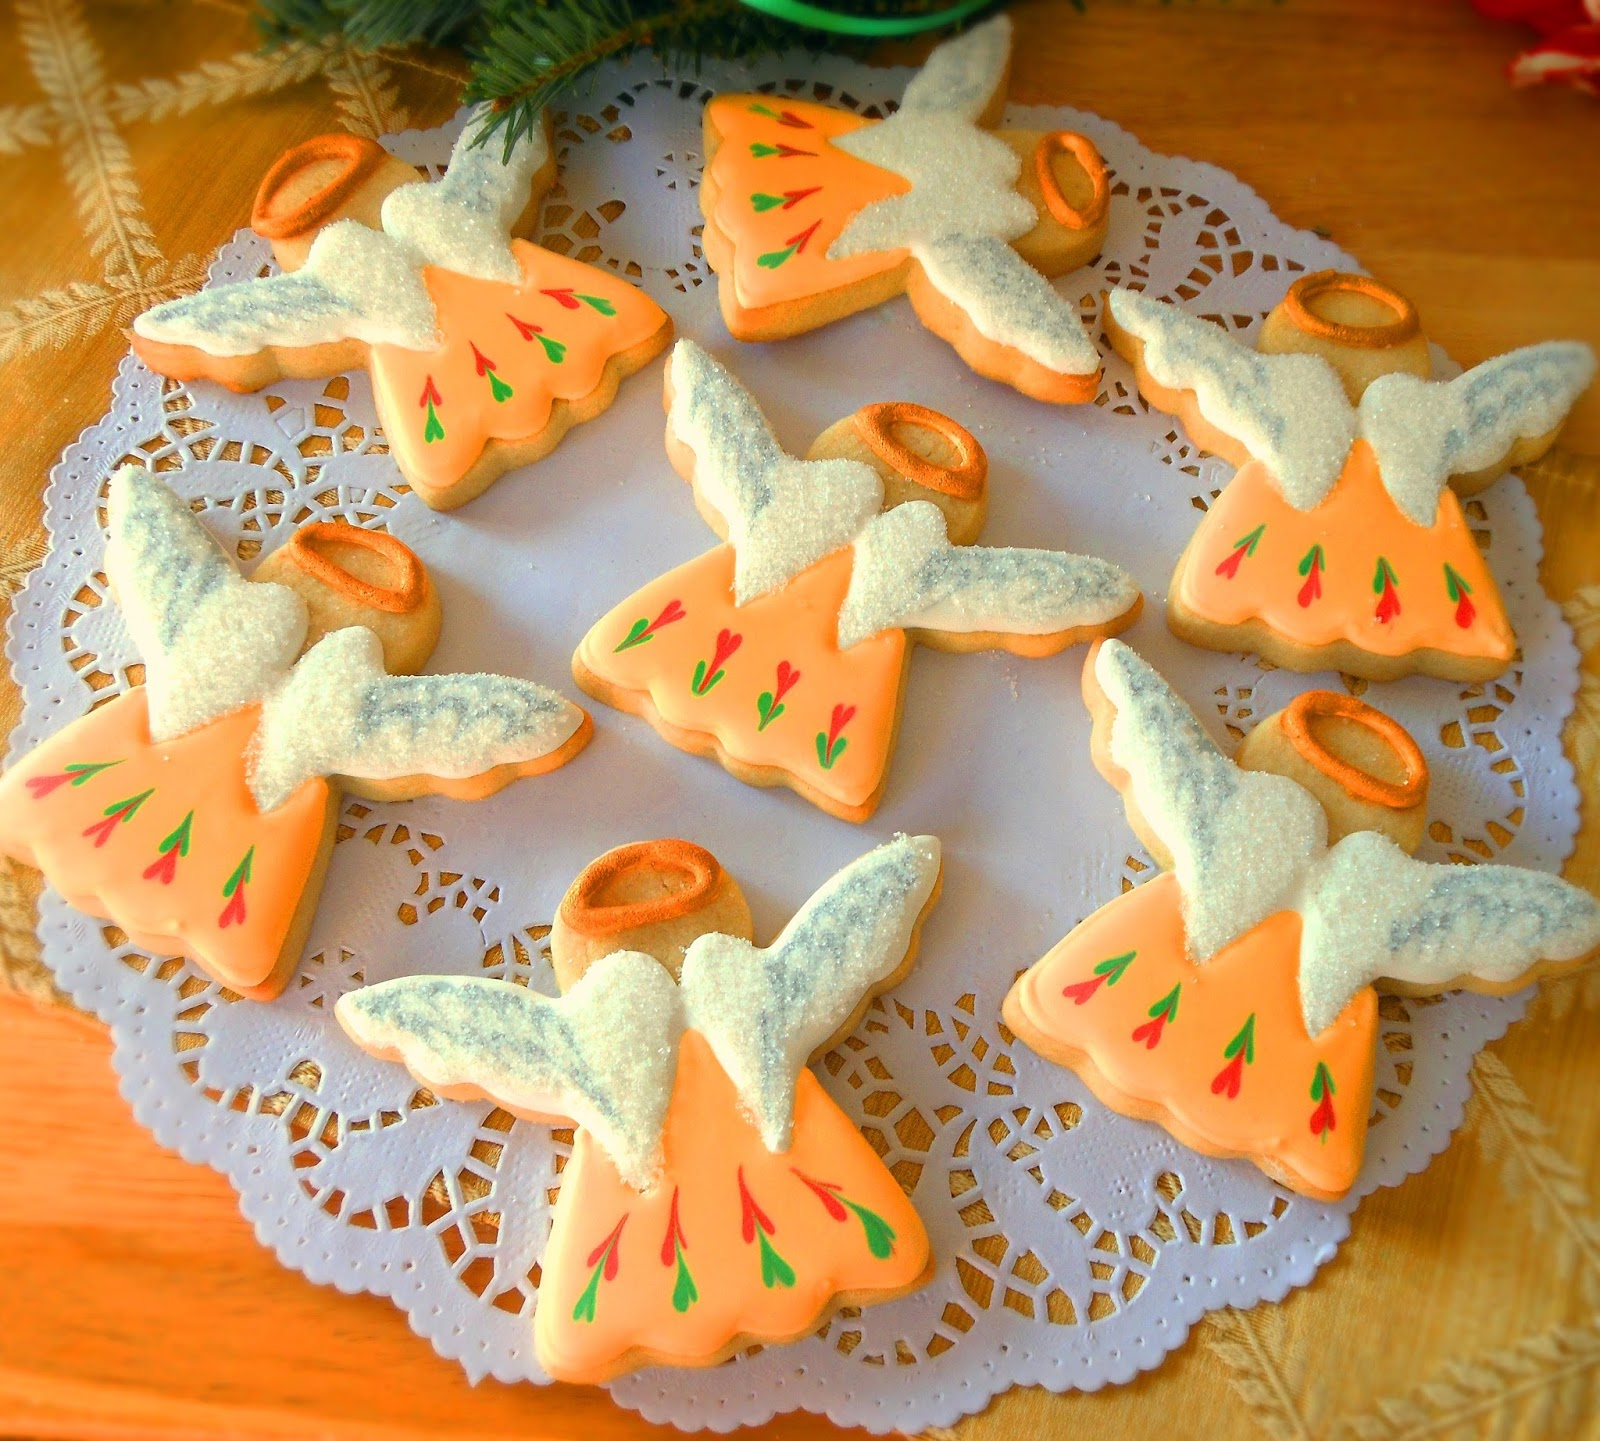 Sugar Water For Christmas Tree: My Cookie Clinic: CHRISTMAS ANGEL COOKIES/ What's An Angel?